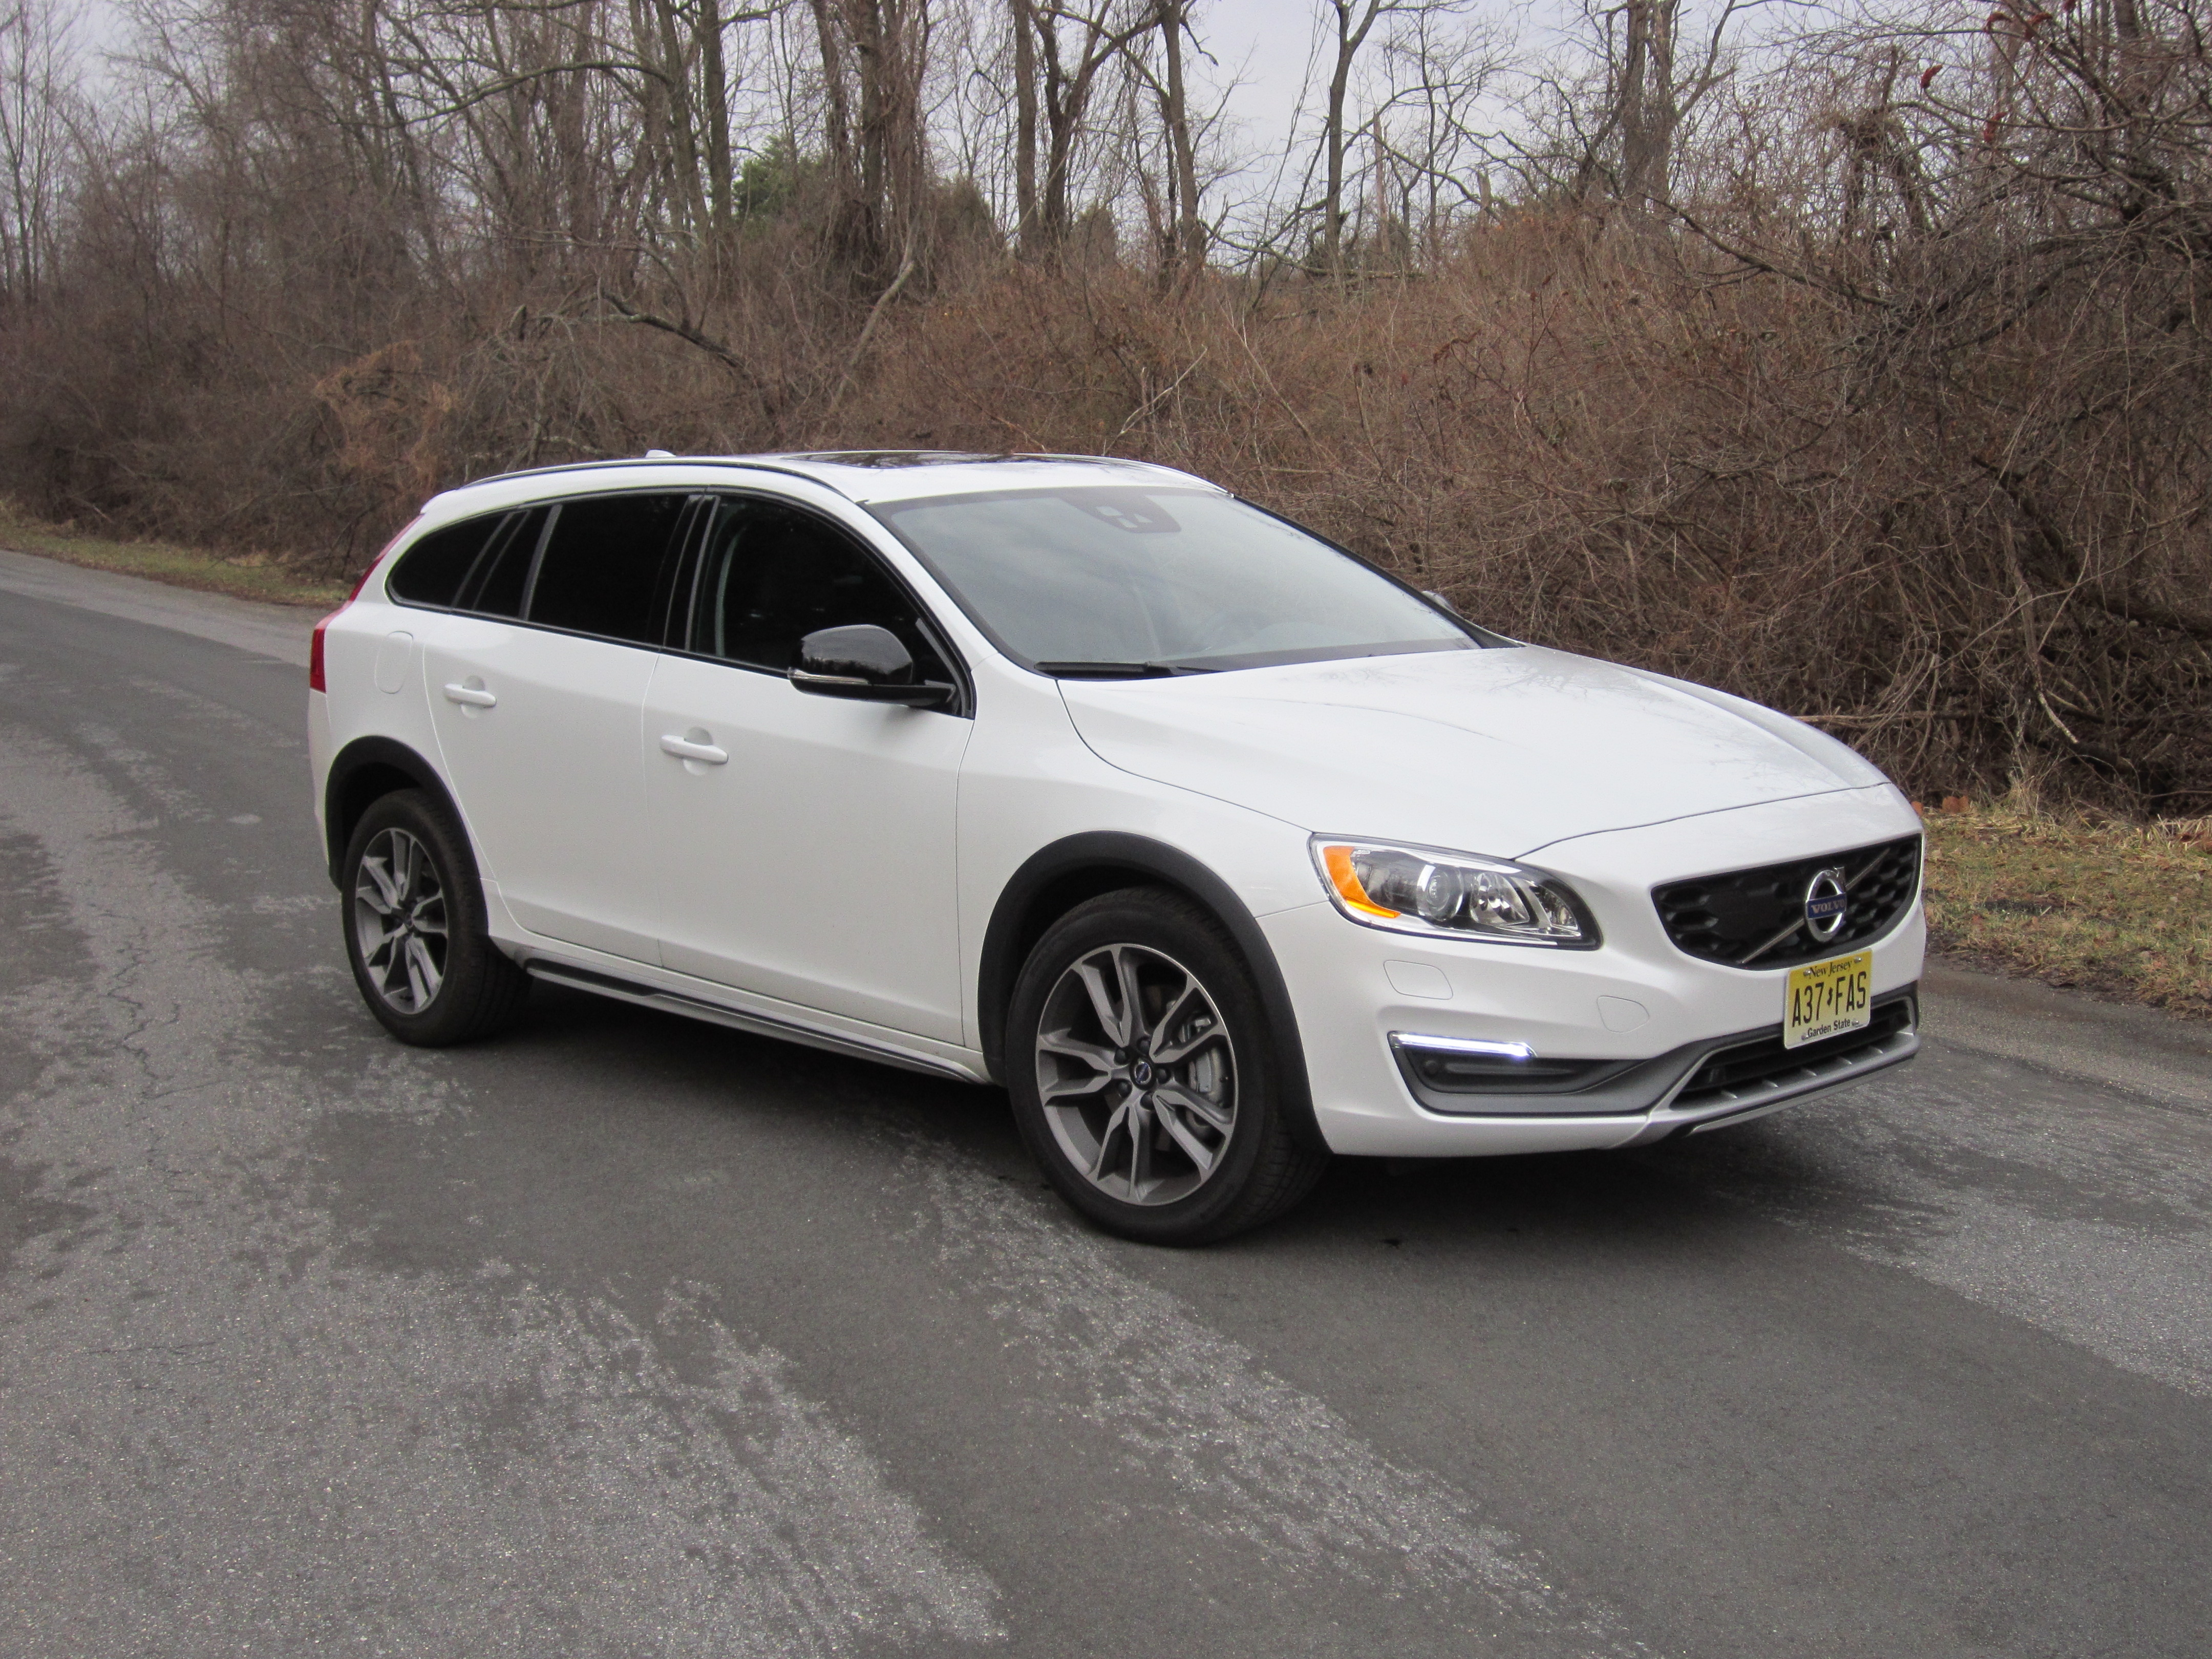 Volvo V60 Cross Country blurs the line between crossover and station wagon